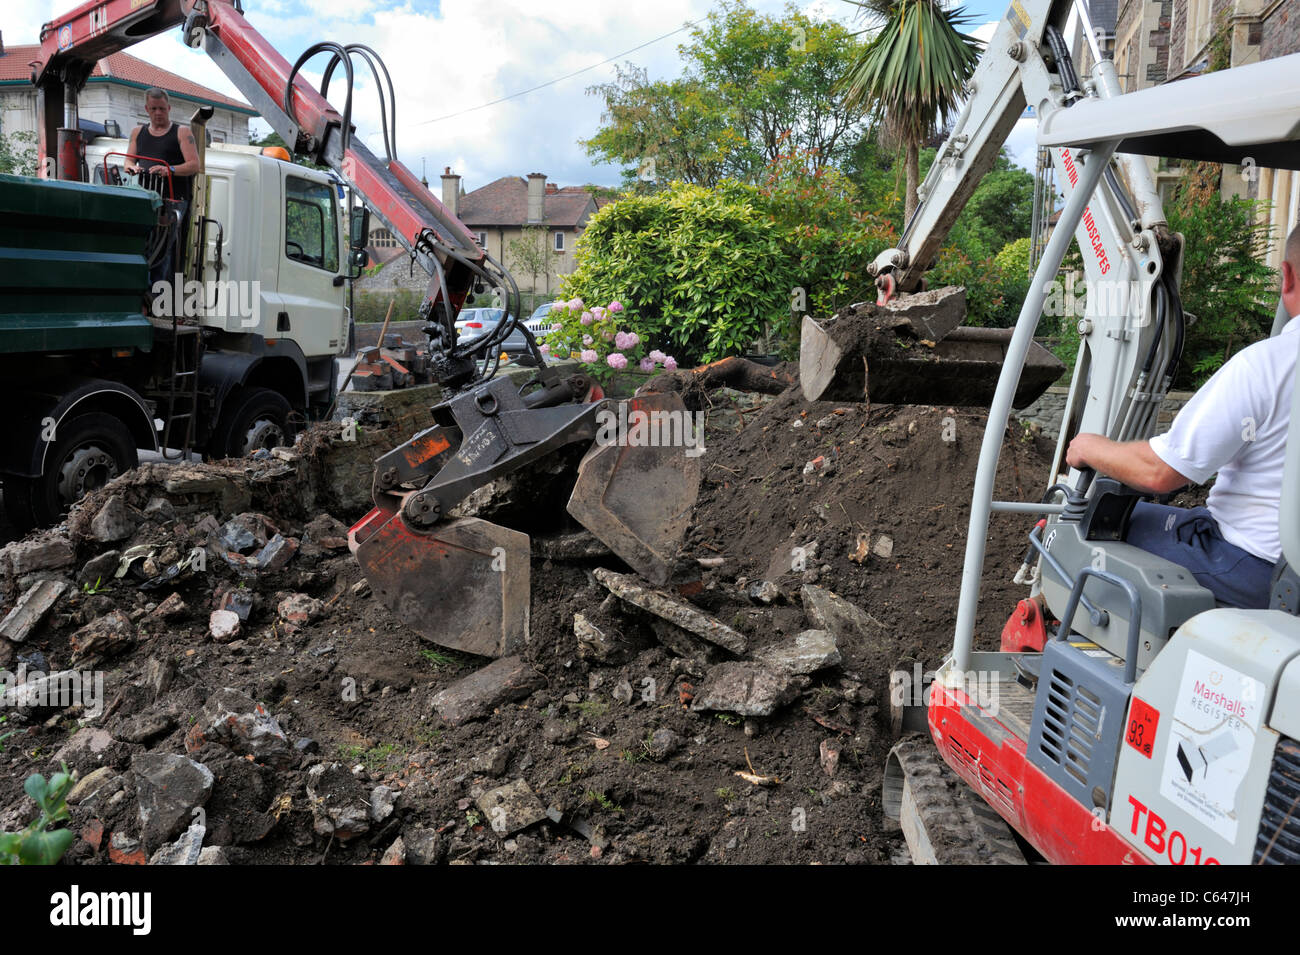 Mechanical excavators clearing ground residential garden Stock Photo